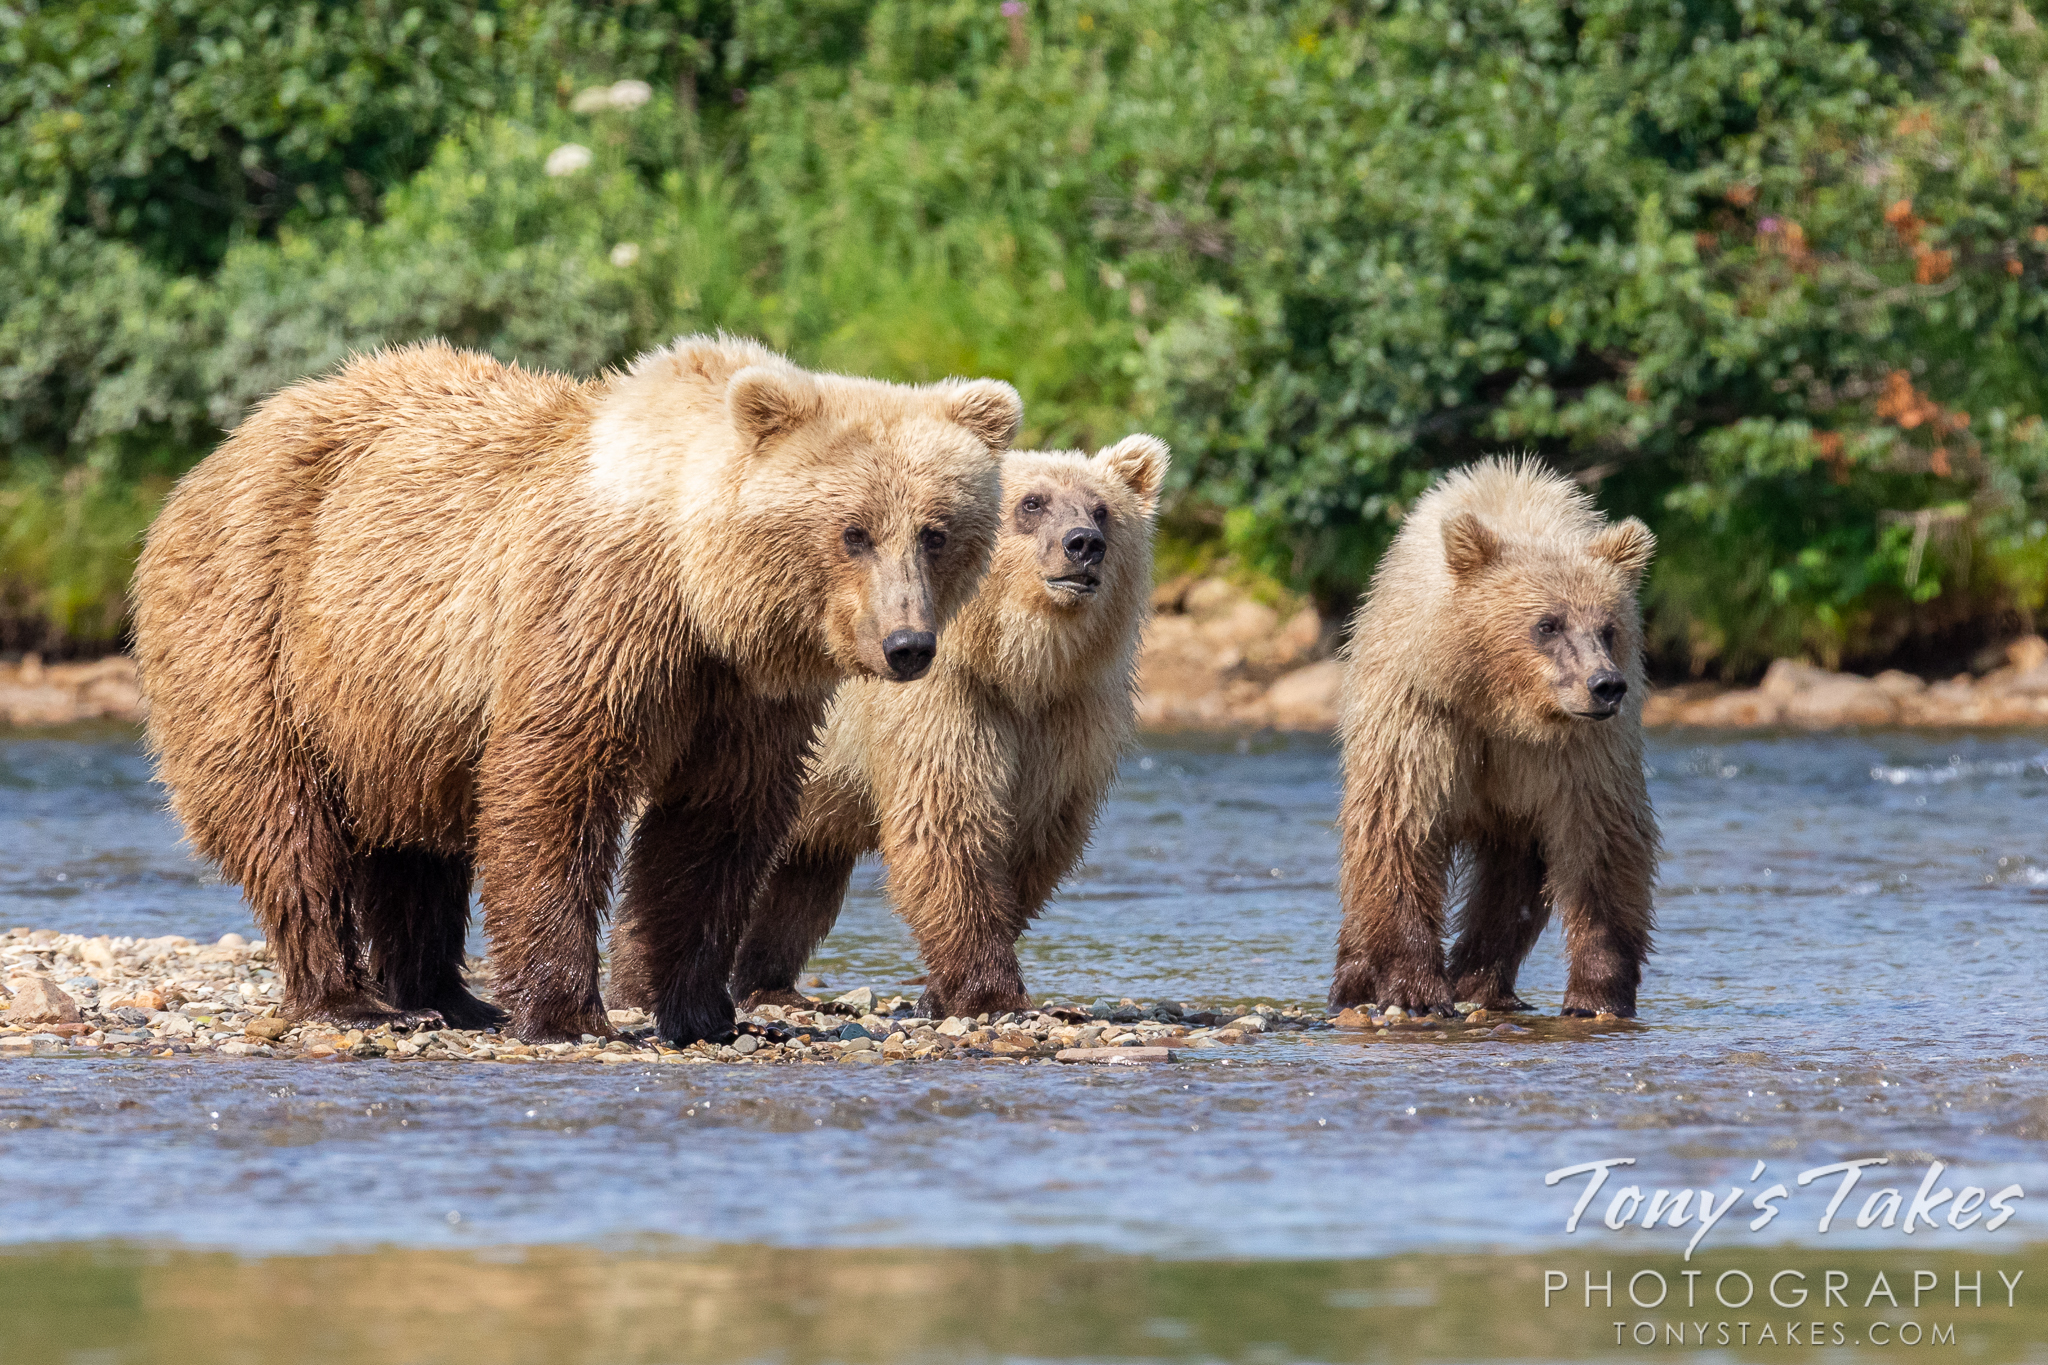 A blonde brown bear sow and her cubs debate the best way to cross the river. (© Tony's Takes)